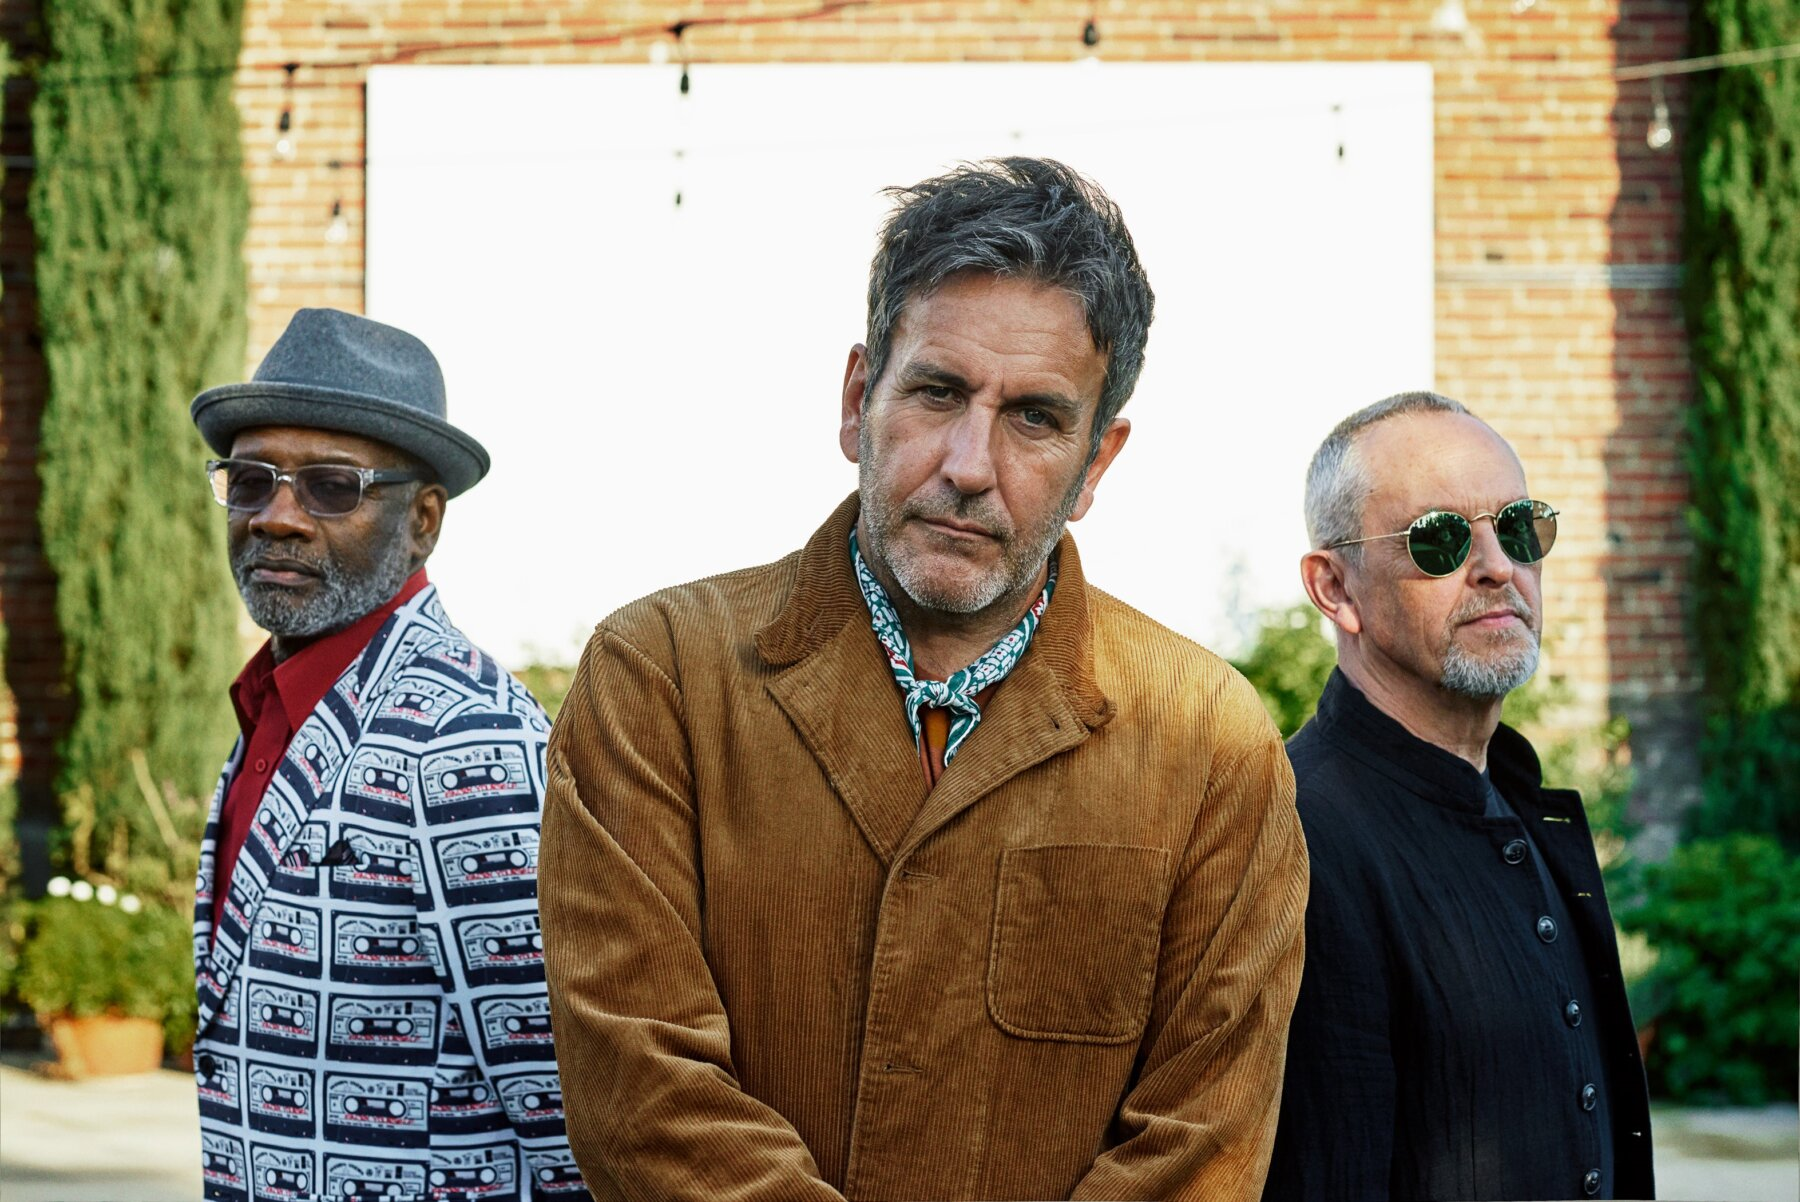 Ska-punk legends The Specials Coming to Hull